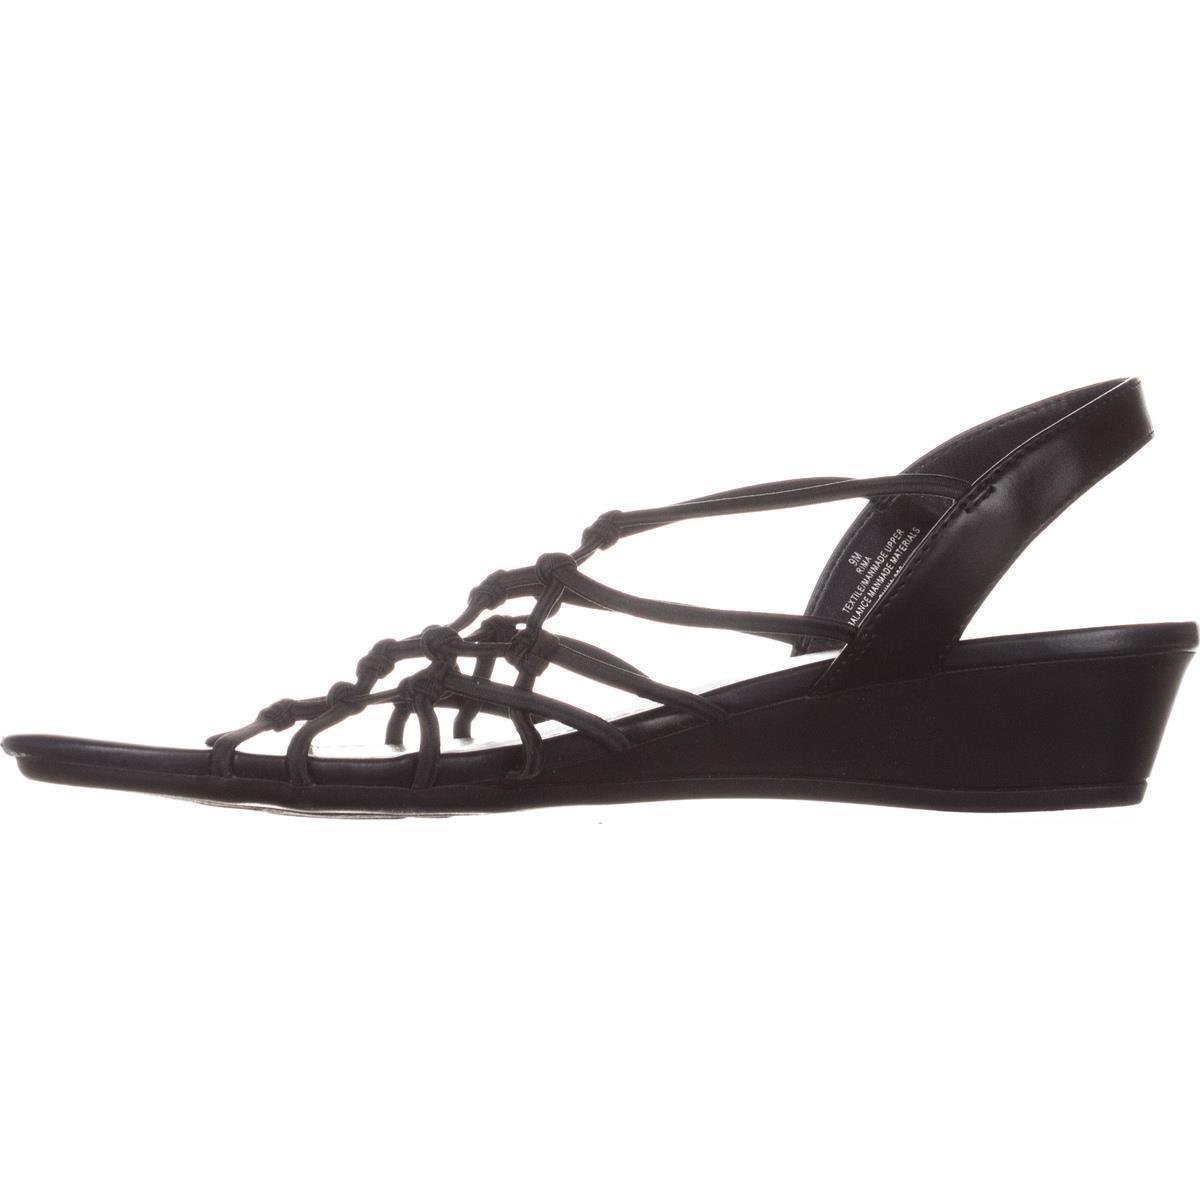 daaff76b844f Impo Womens Rima Open Toe Casual Strappy Sandals - Casual Women s Shoes